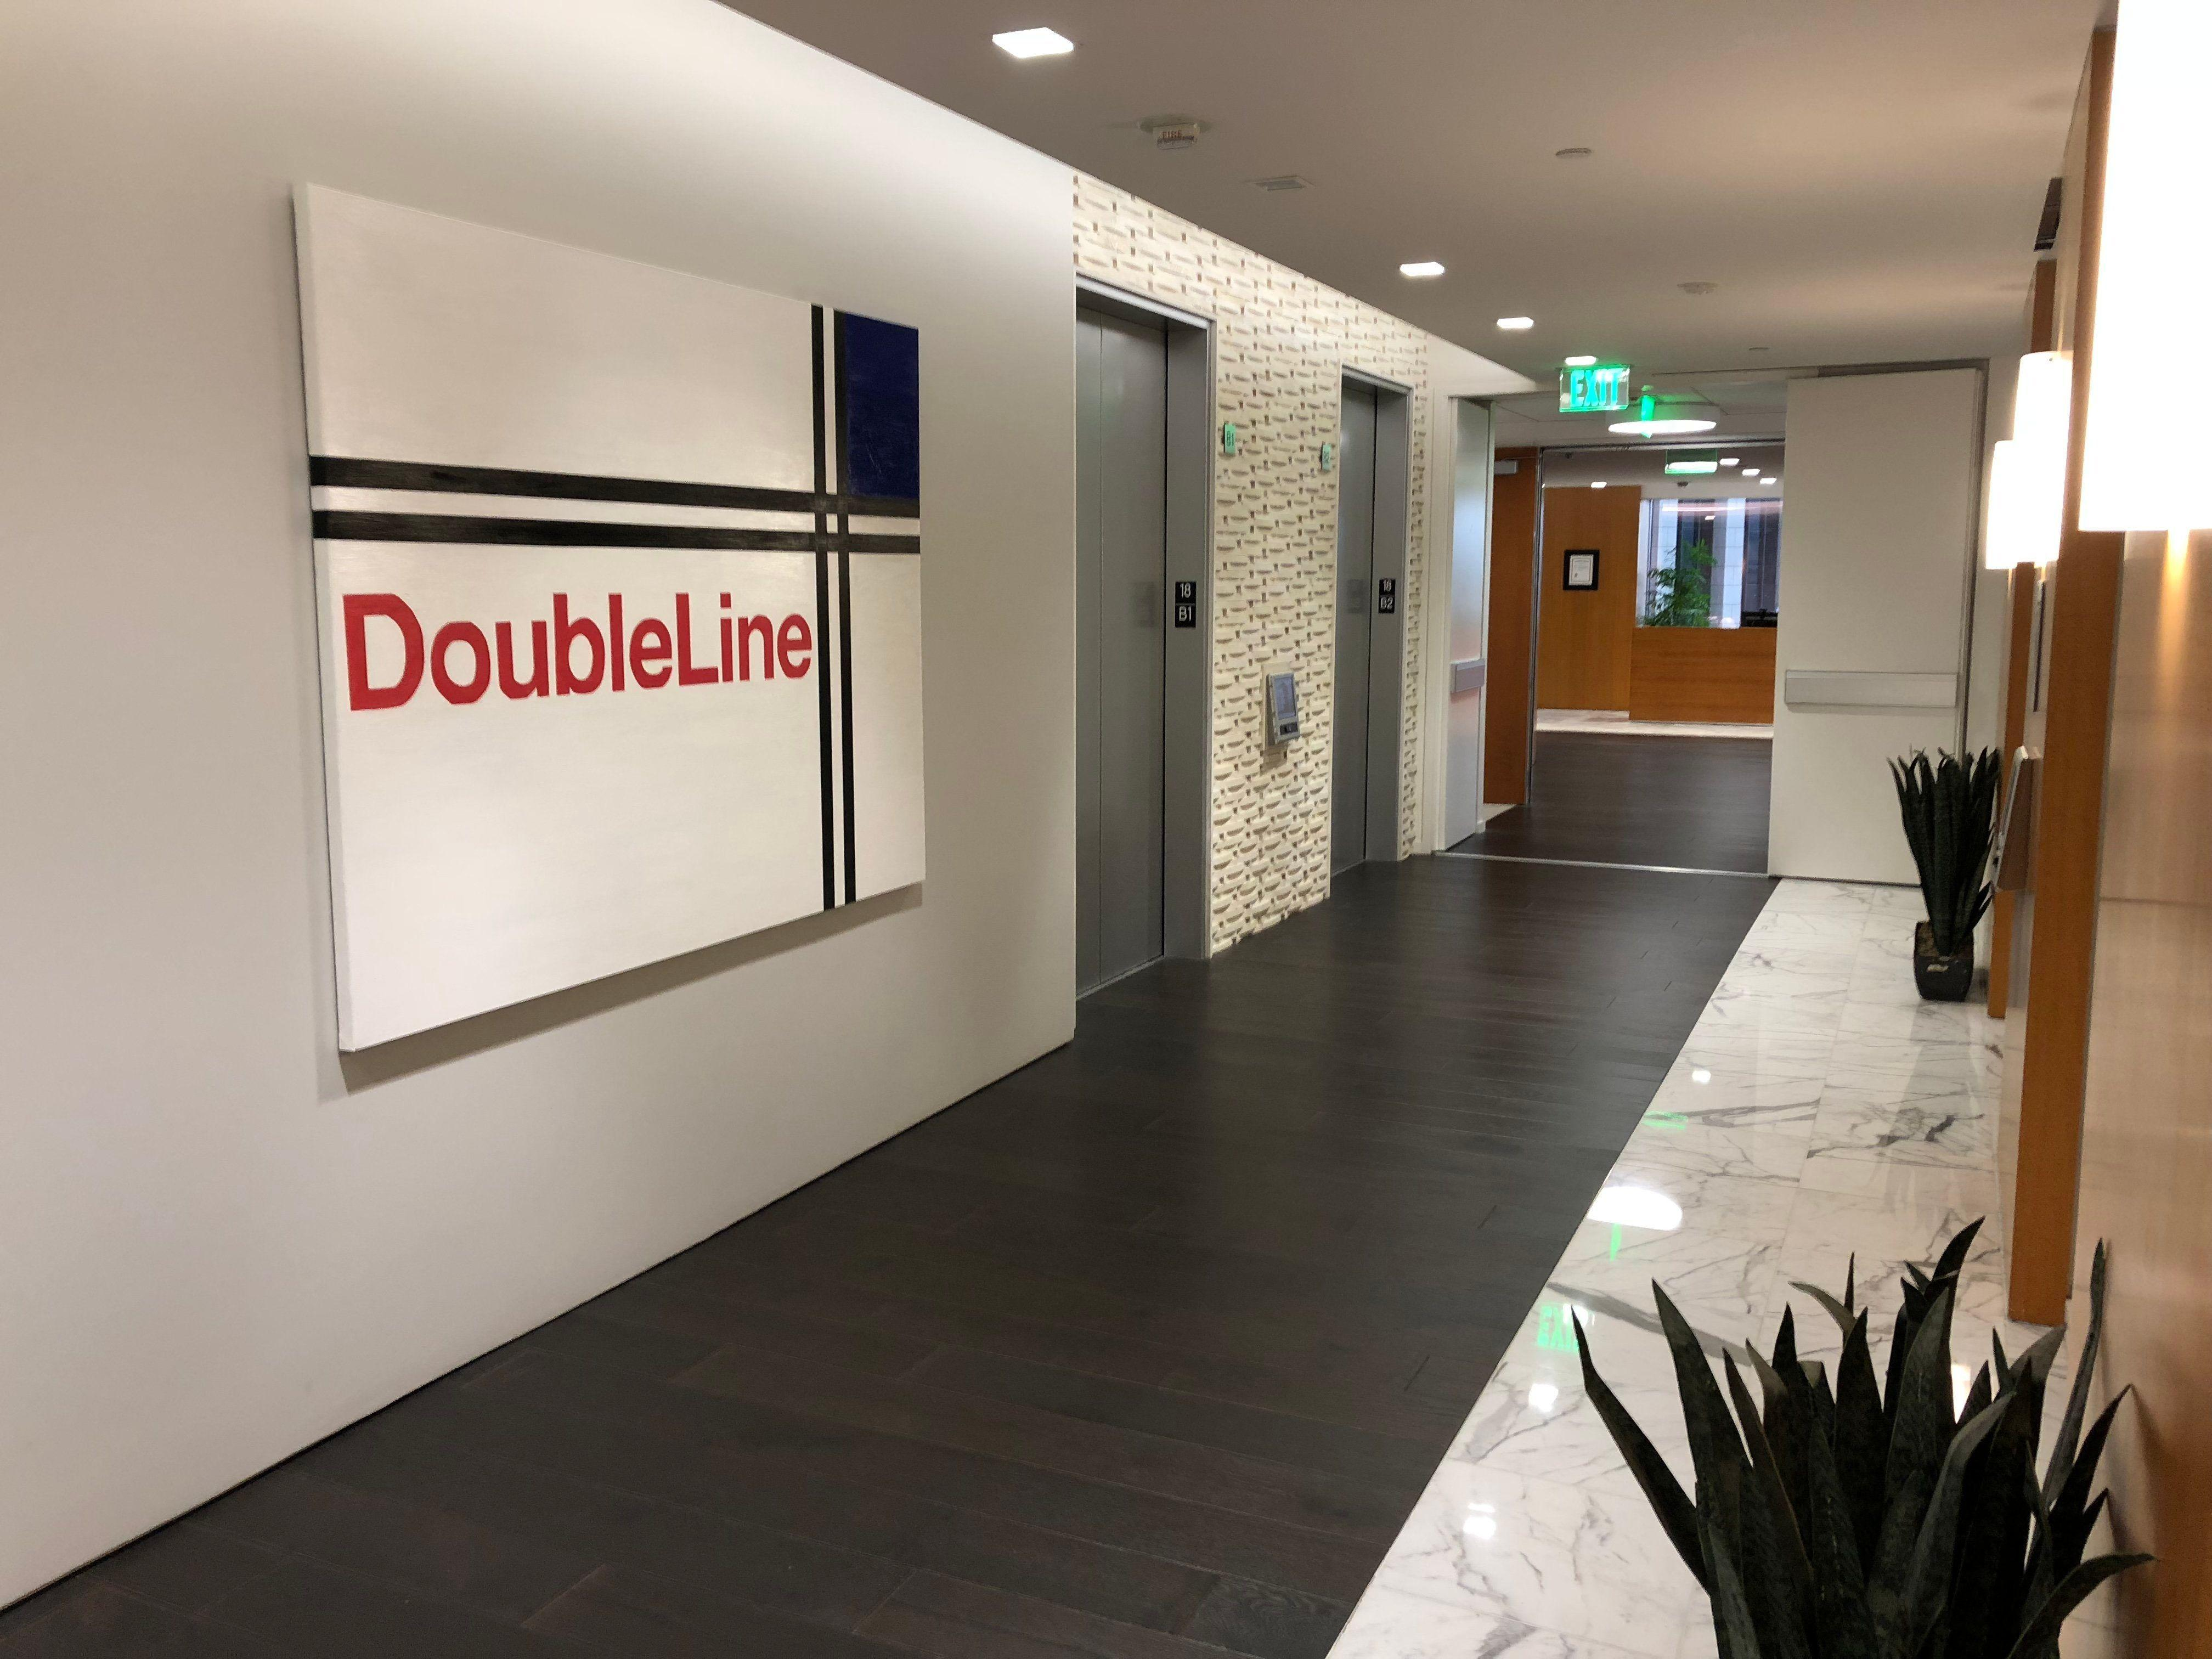 Jeffrey Gundlach likes to hire two types of people at DoubleLine Capital